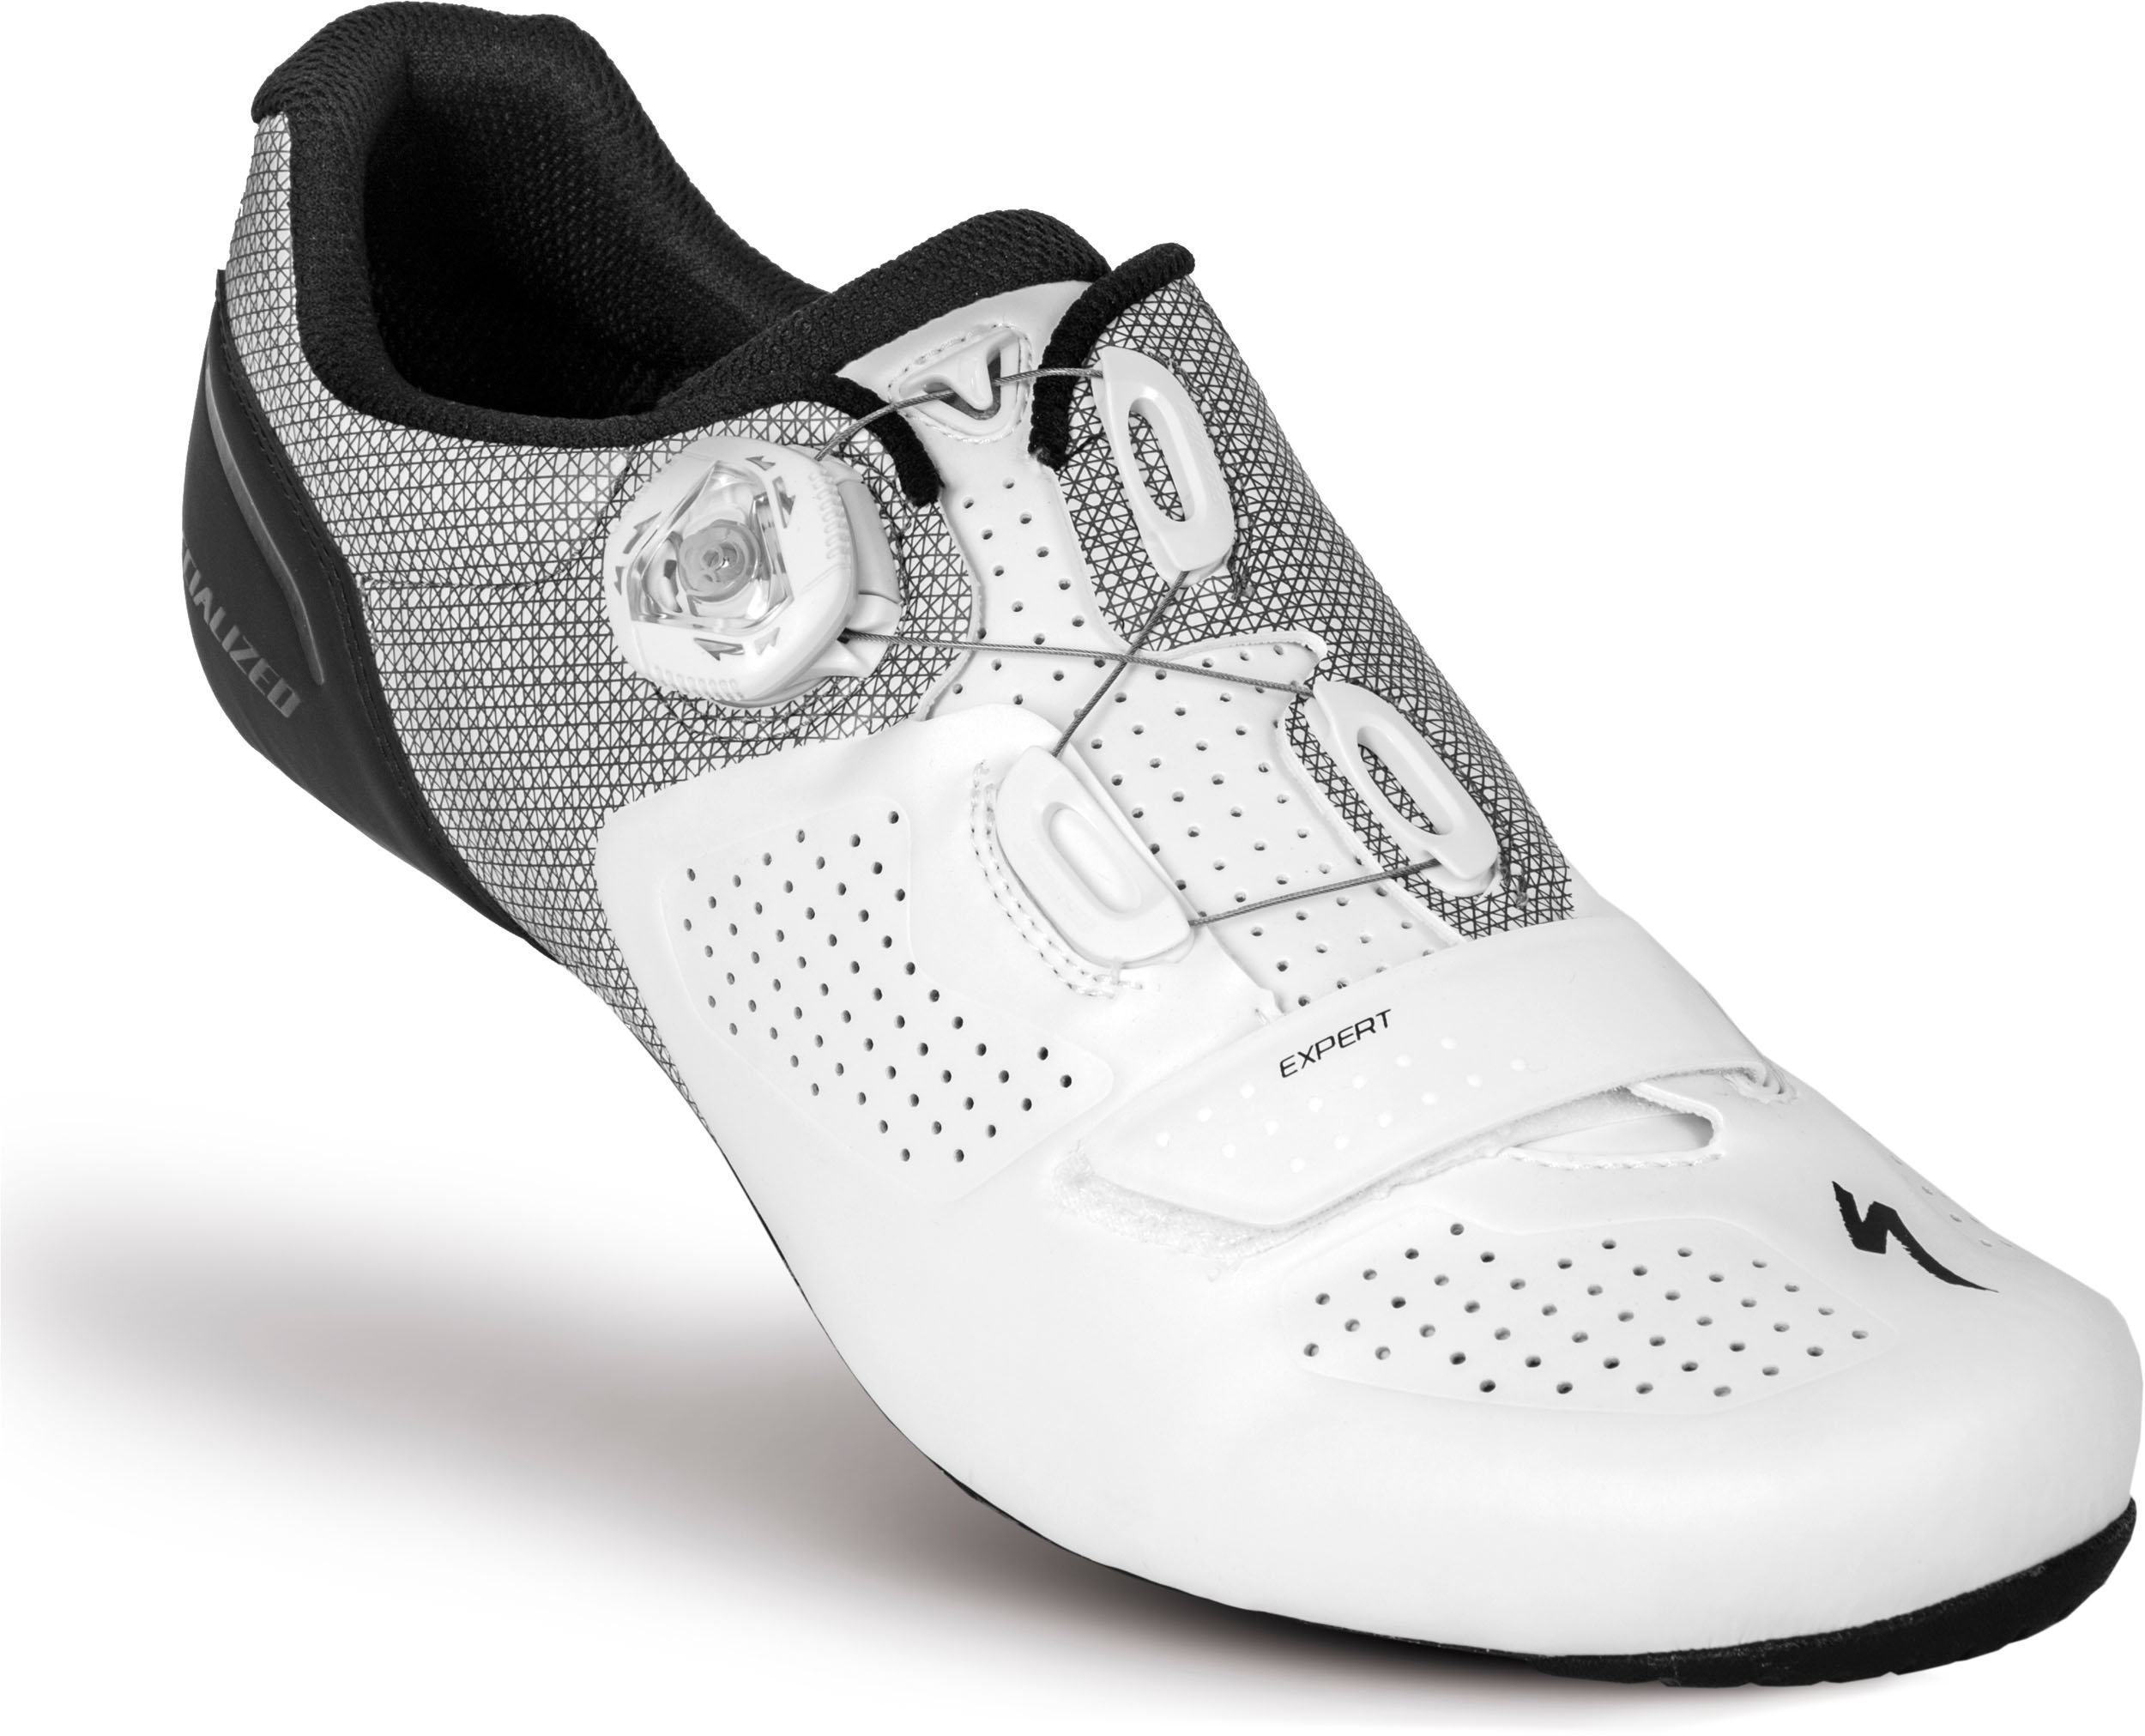 SPECIALIZED EXPERT RD SHOE WHT/BLK 39/6.5 - Bikedreams & Dustbikes